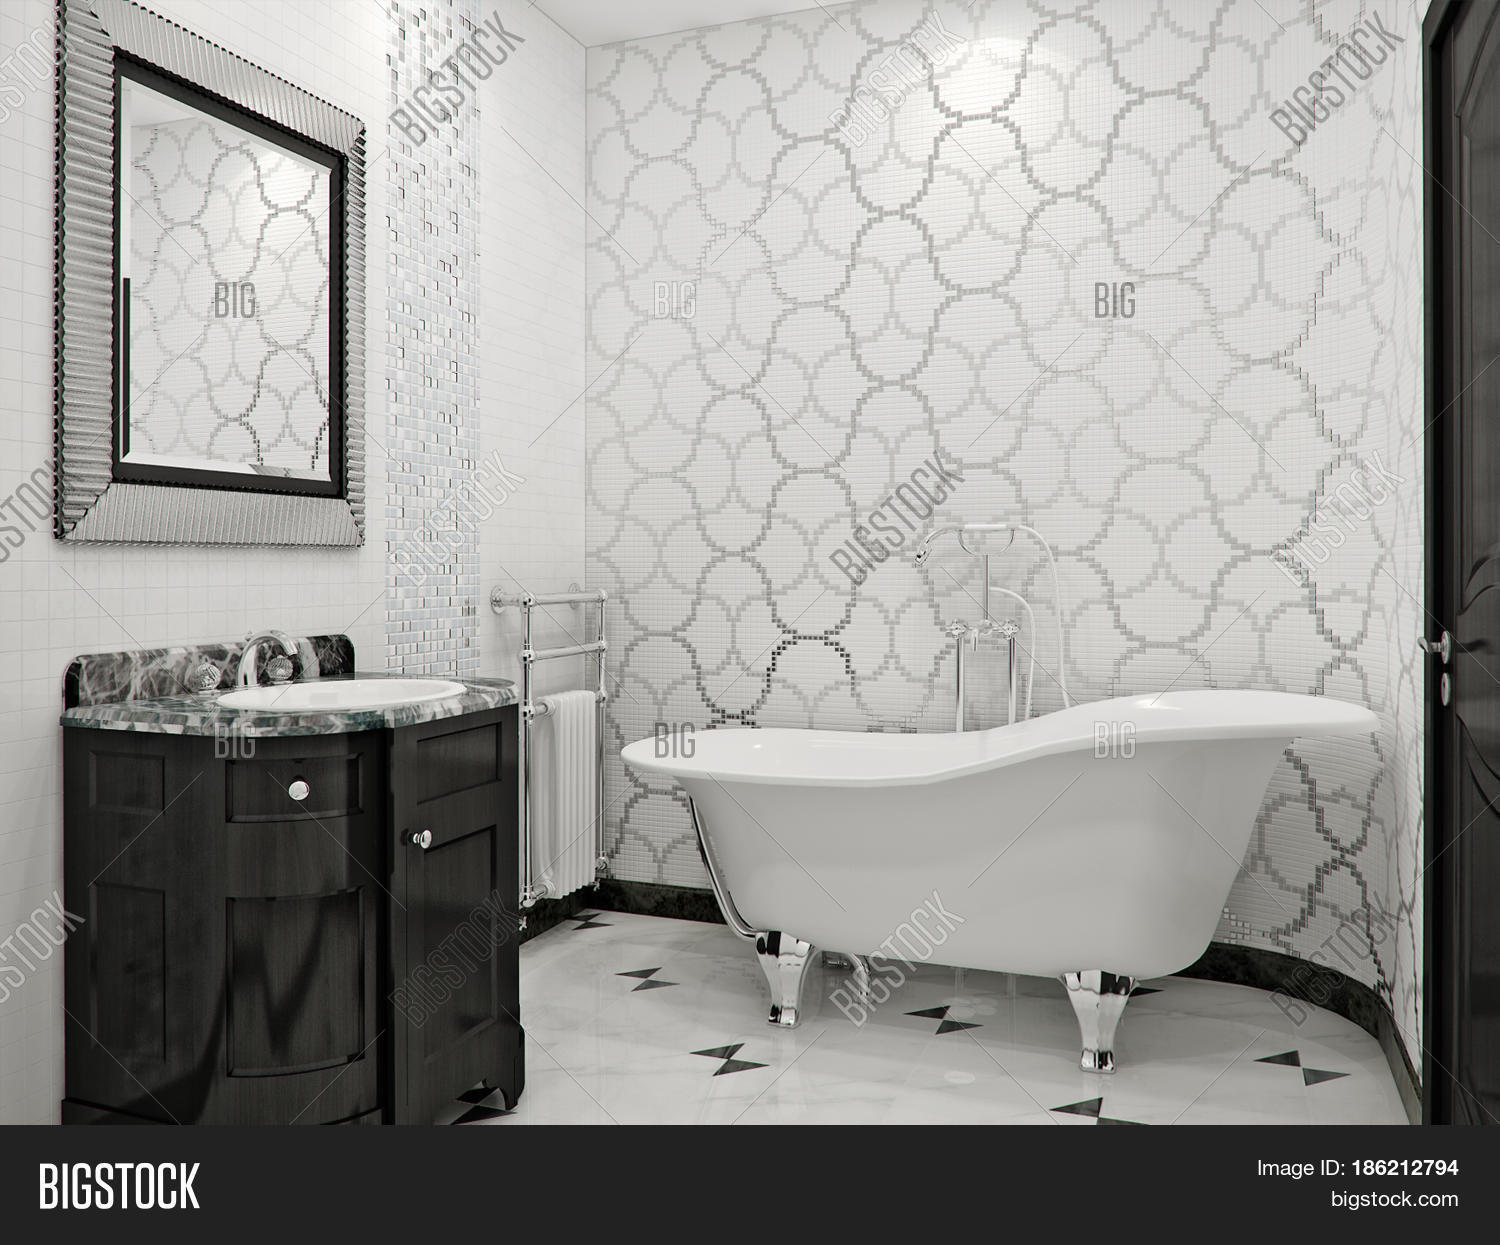 Luxurious Bathroom Image & Photo (Free Trial) | Bigstock